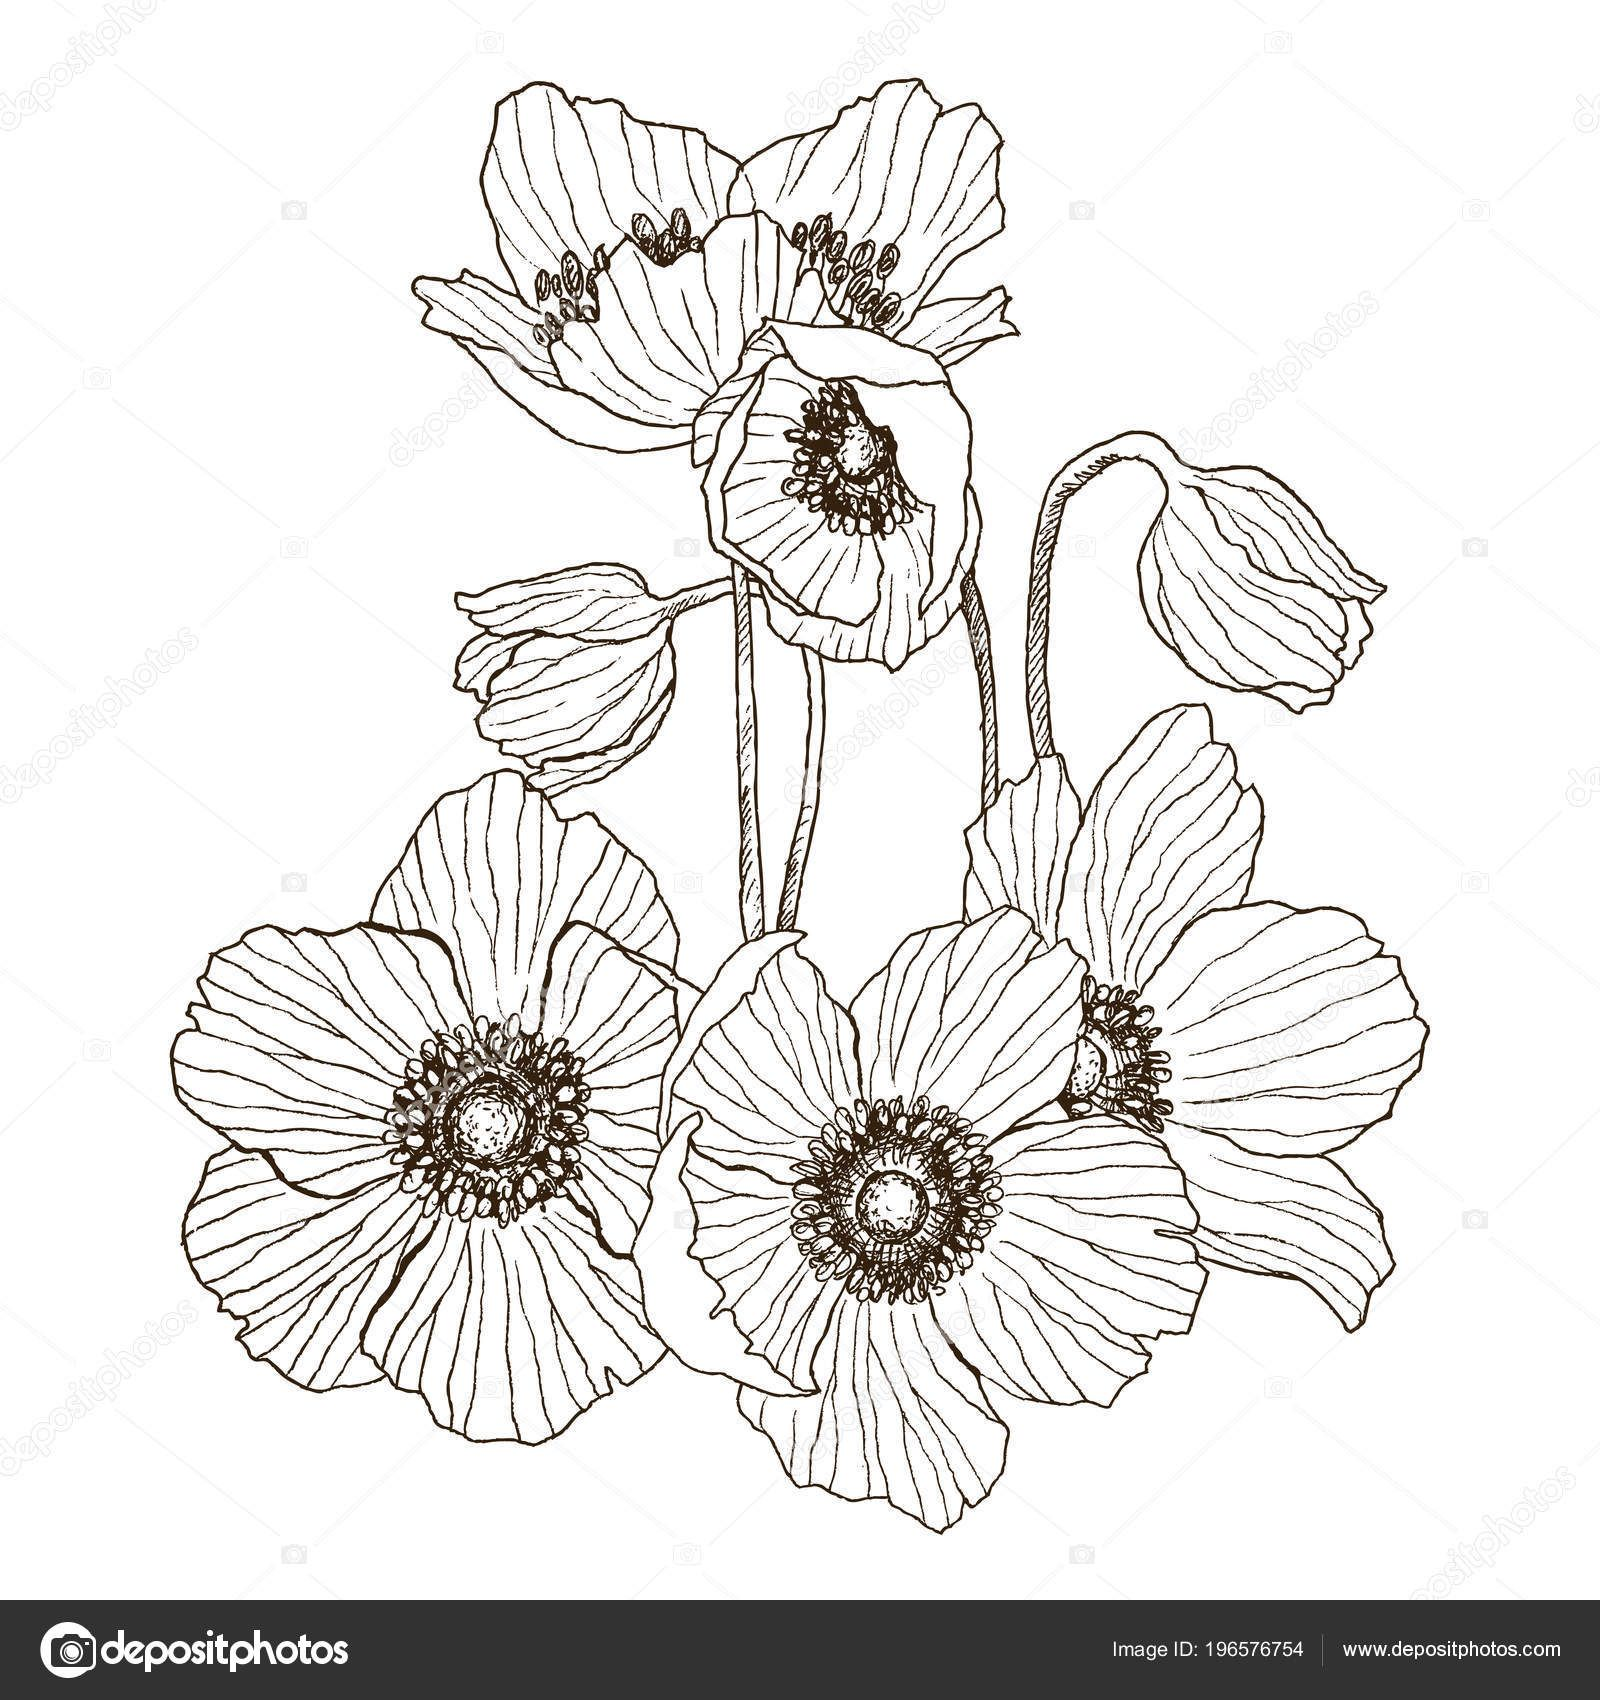 Vintage Anemone Flowers Wedding Flowers Bundle Can Use For Greeting Cards Wedding Invitations P In 2020 Floral Pattern Vector Flower Drawing Flower Bouquet Drawing